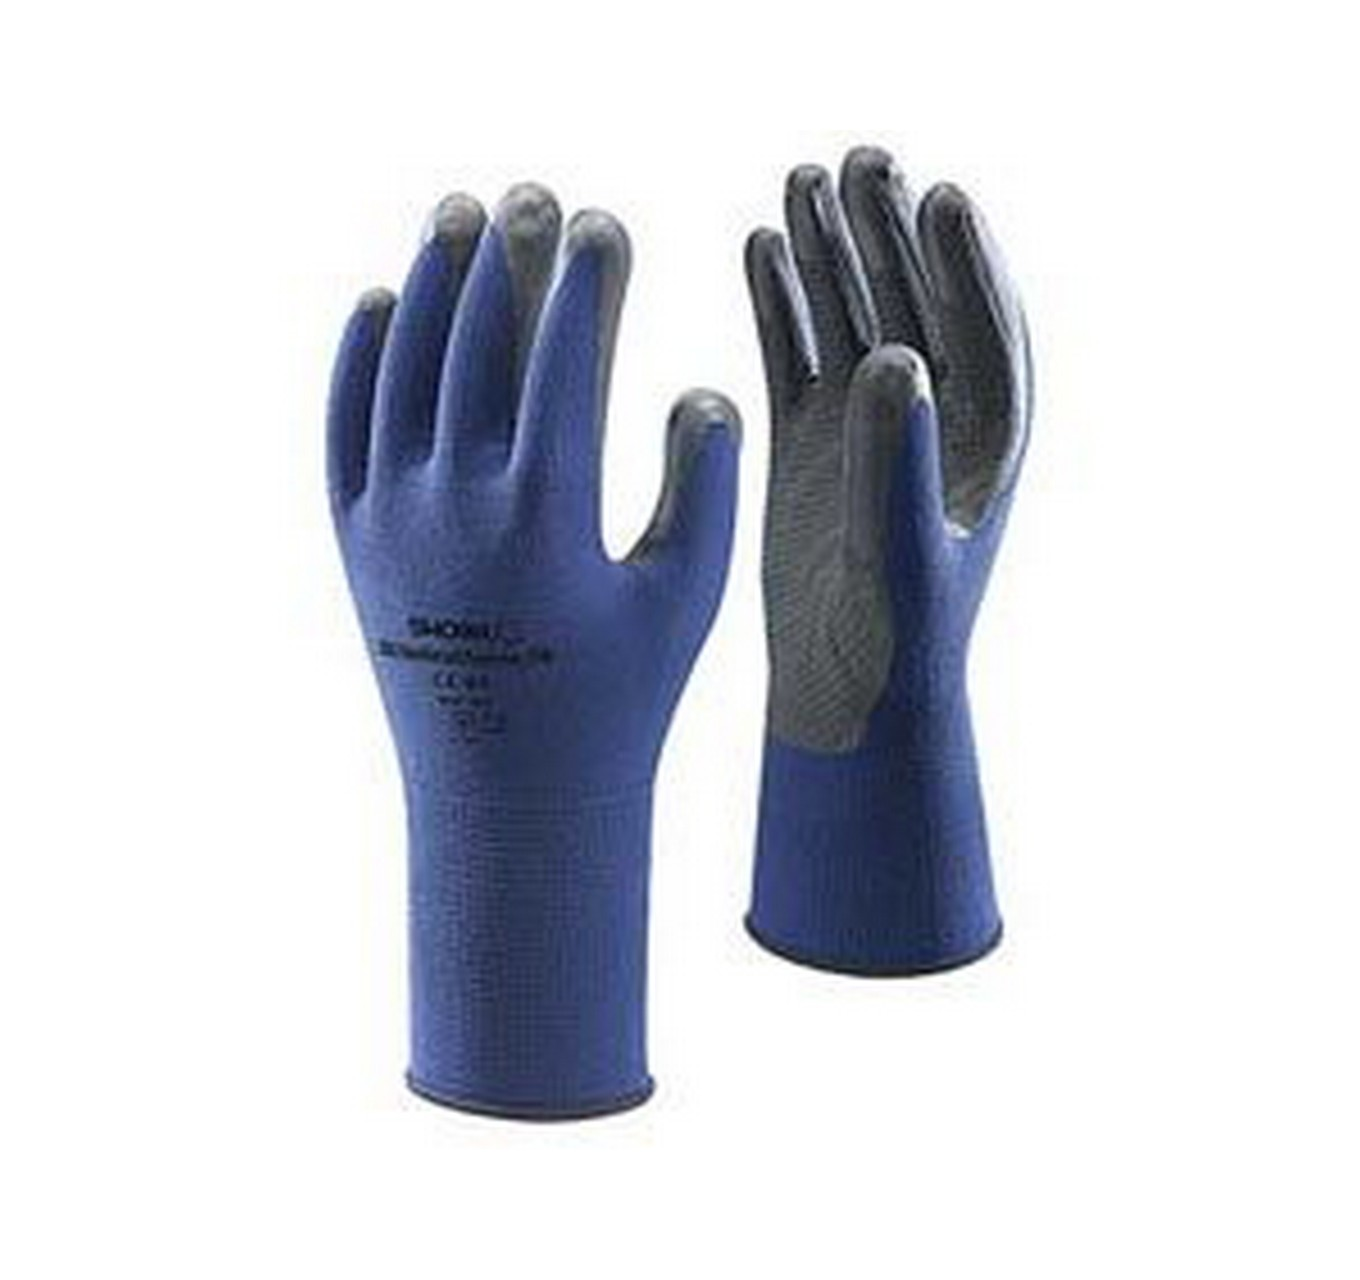 Hy5 Grip Glove L